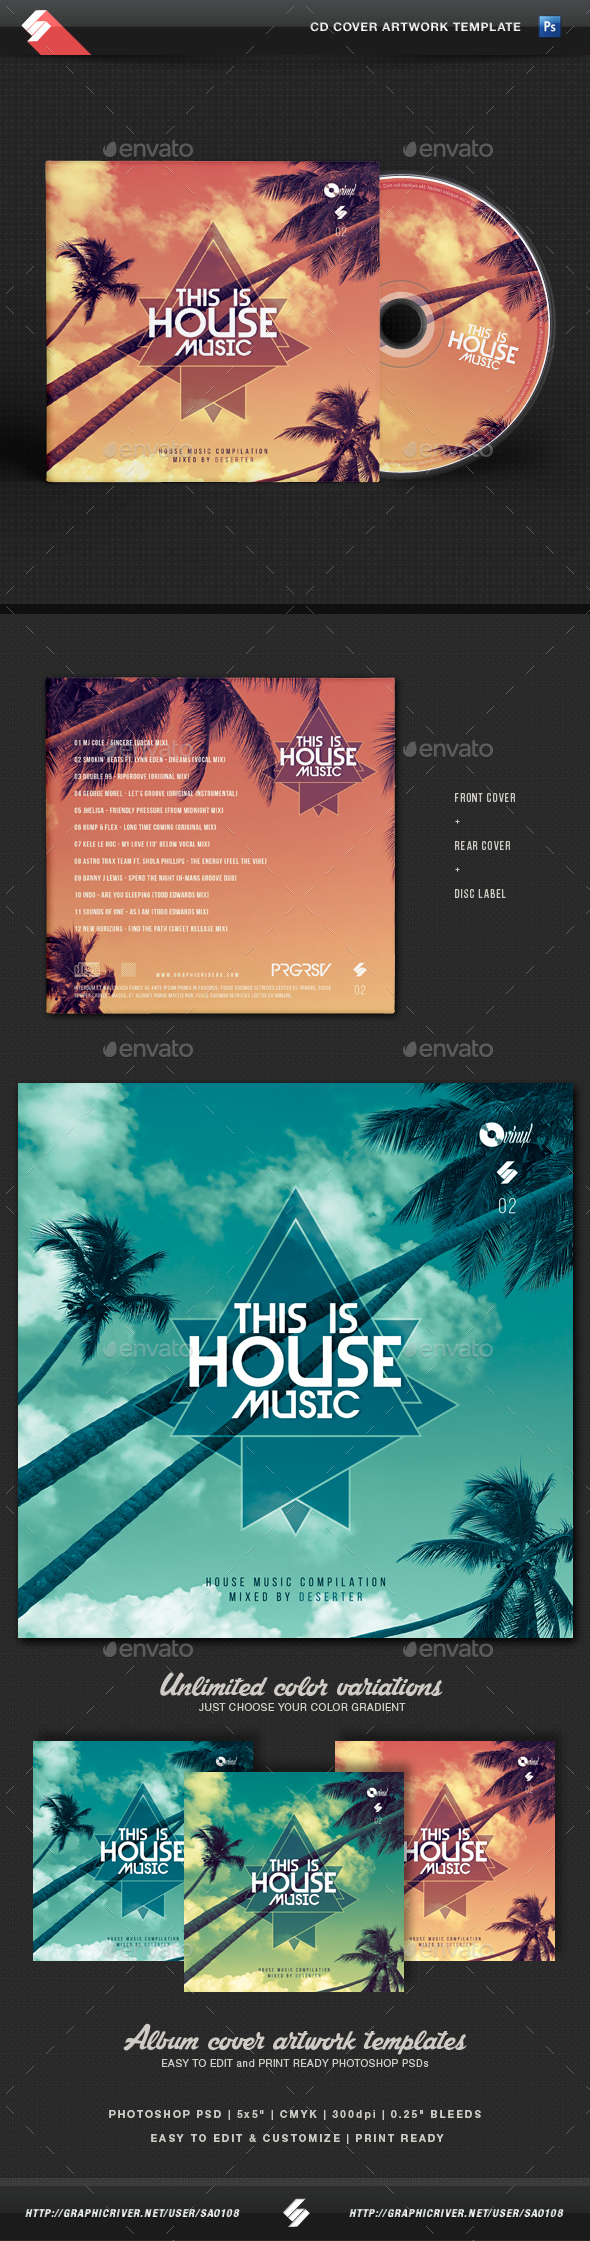 cd case artwork template - this is house music vol 2 cd cover artwork template by